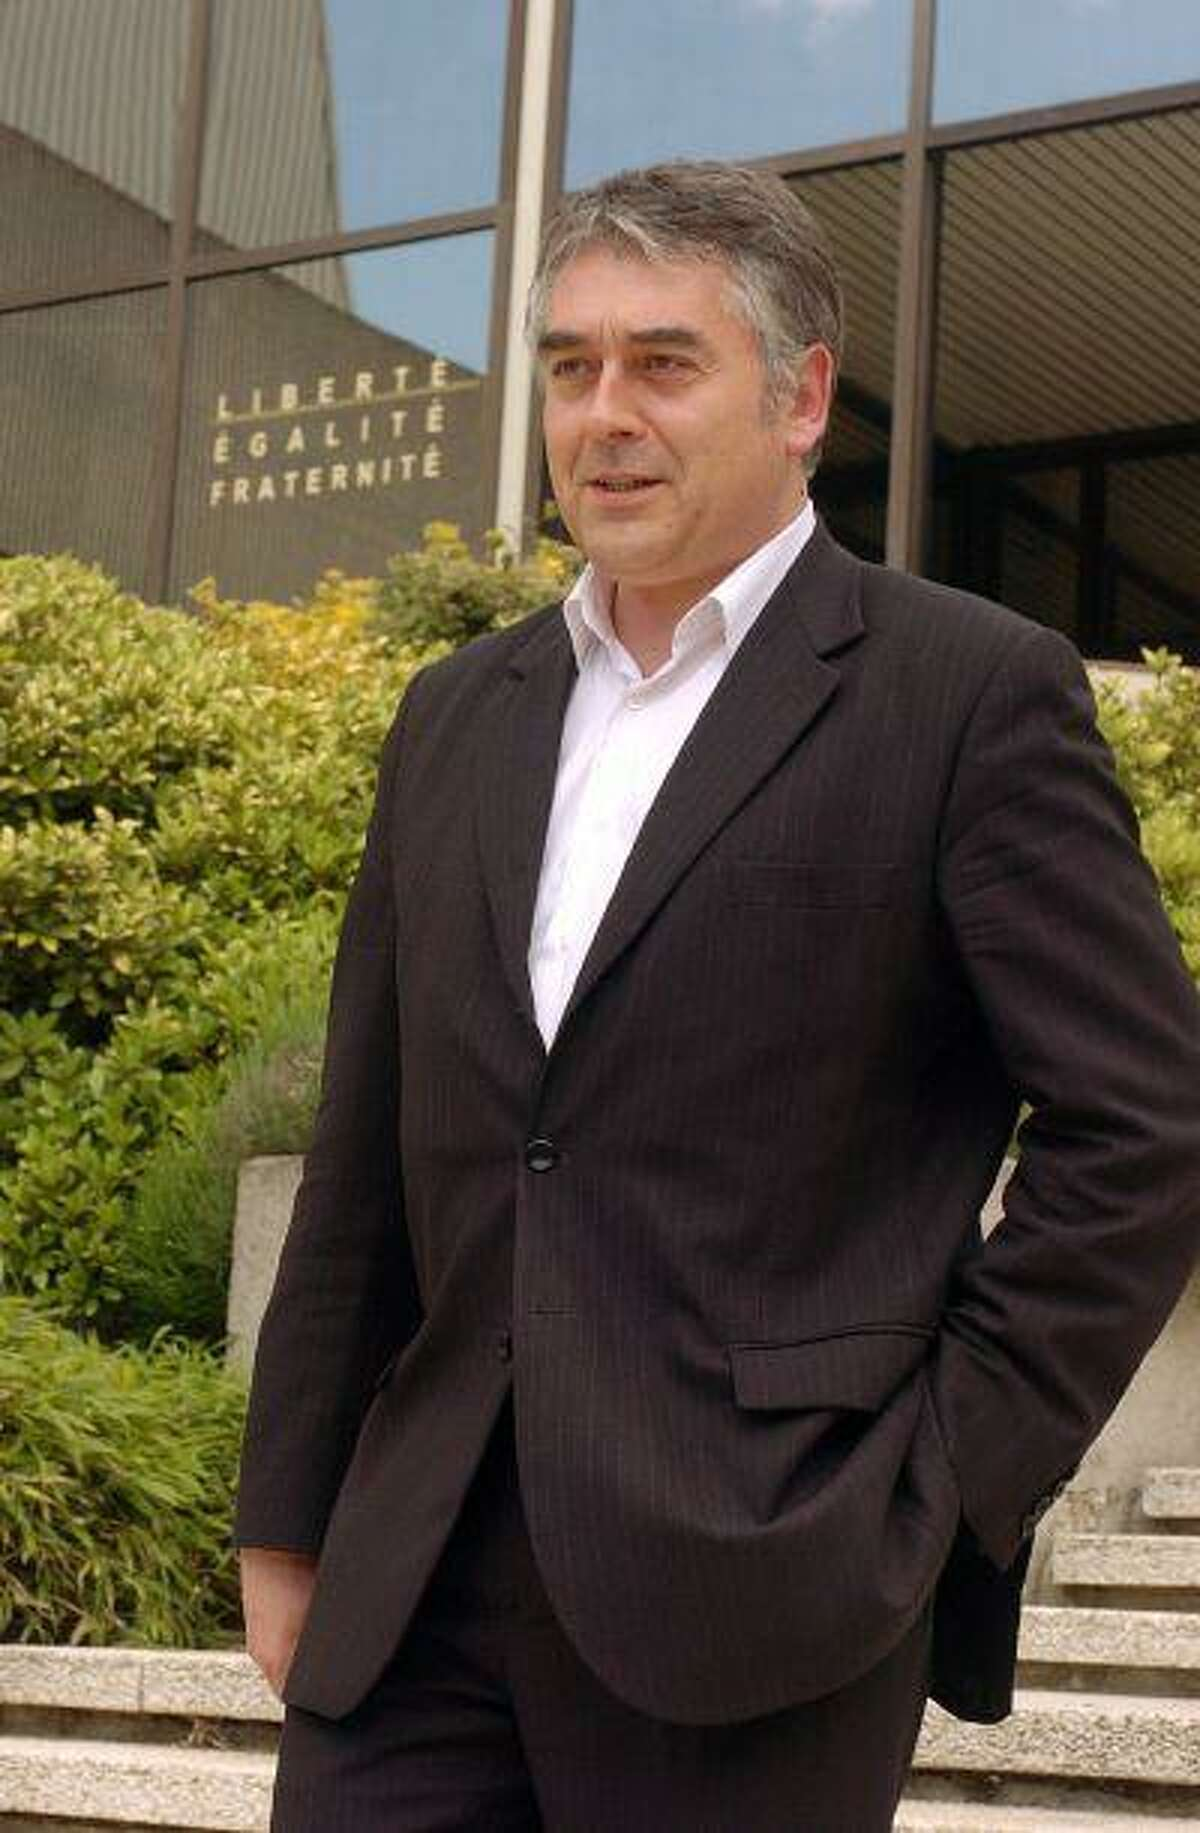 Gilles Bourdouleix, then-deputy mayor of the town of Cholet, France, poses in front of the town hall on May 26, 2006.